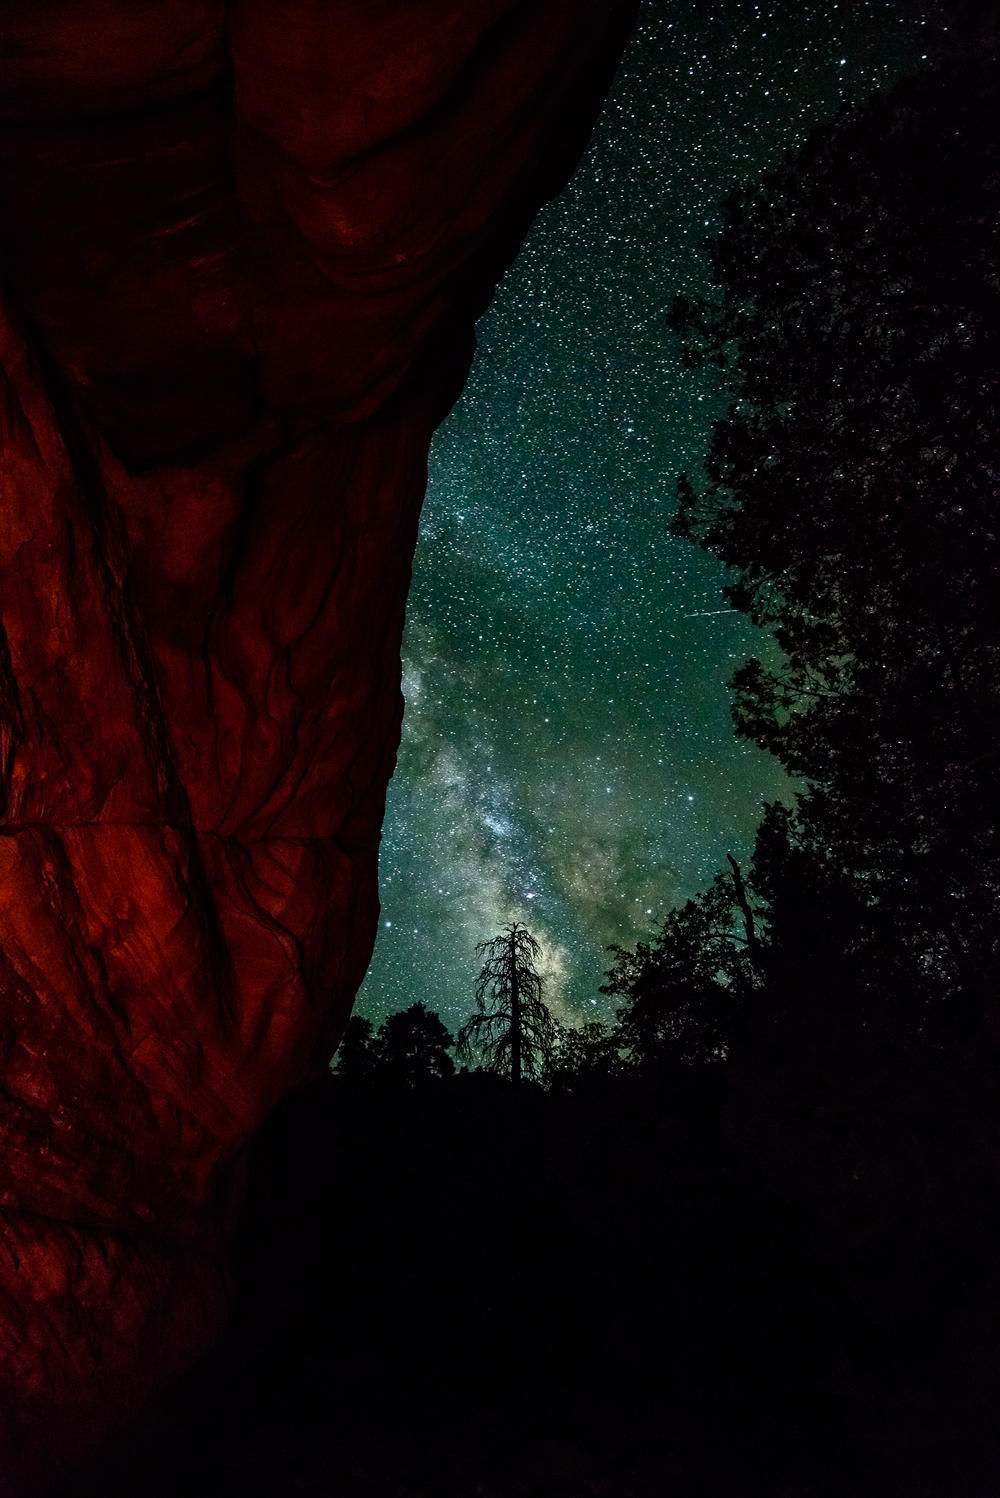 With pristine clear skies, the milky way and other celestial bodies are routinley visible in Zion National Park, UT.